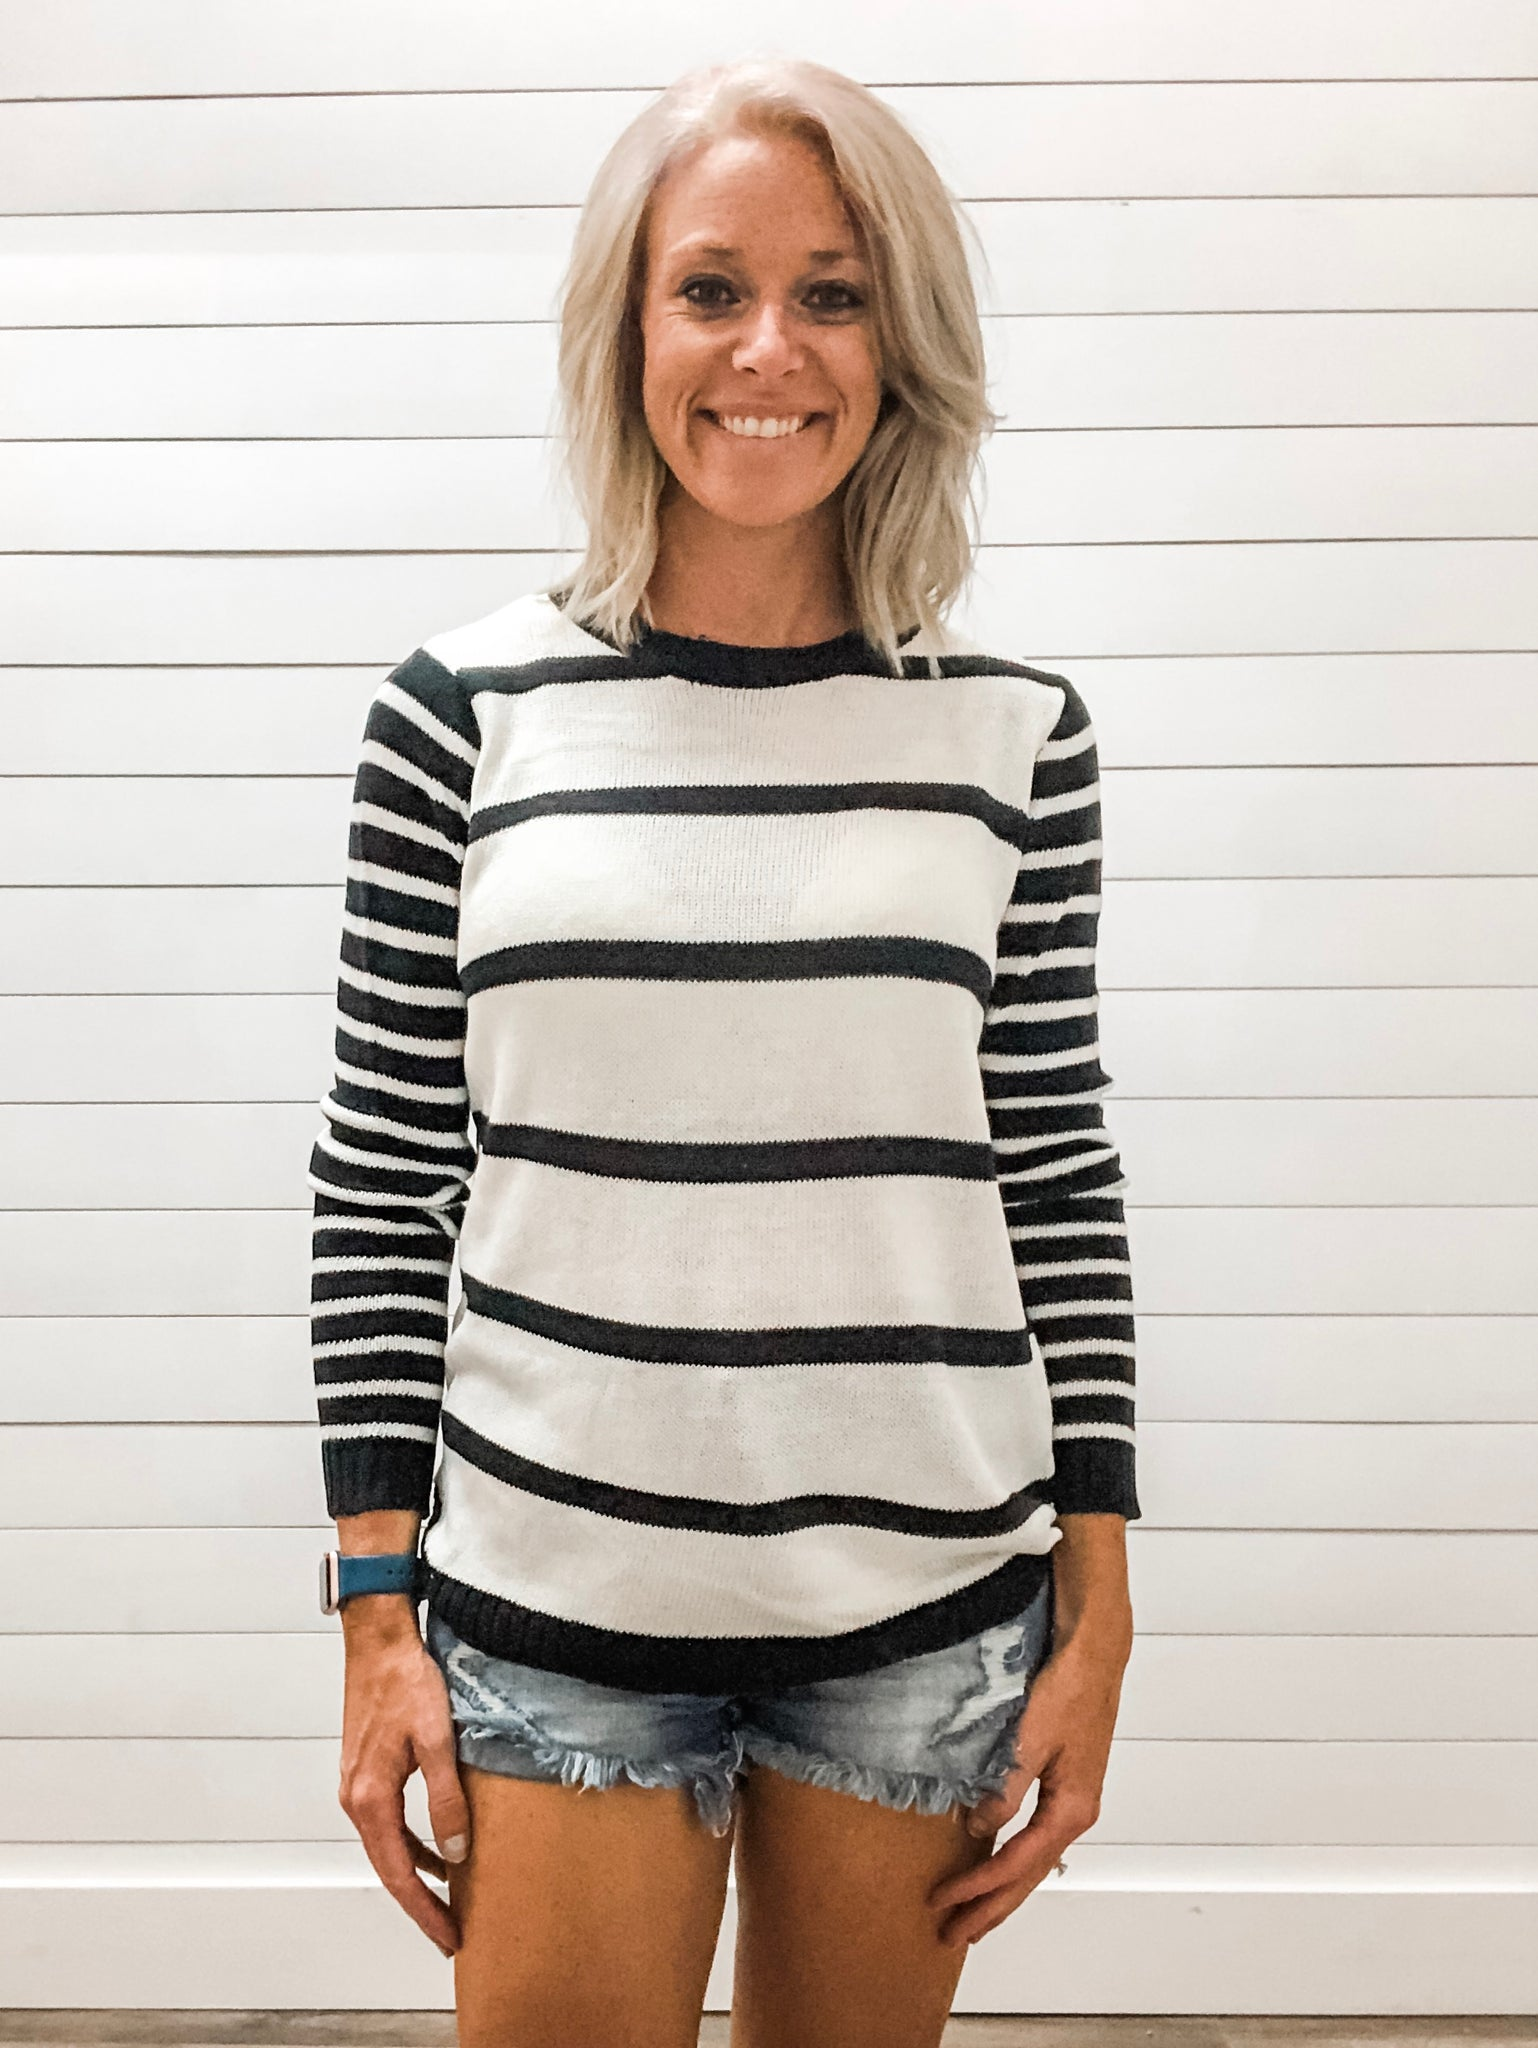 Crew Neck, Mixed Stripe, Long Sleeve, High Lo, Pullover Sweater Top